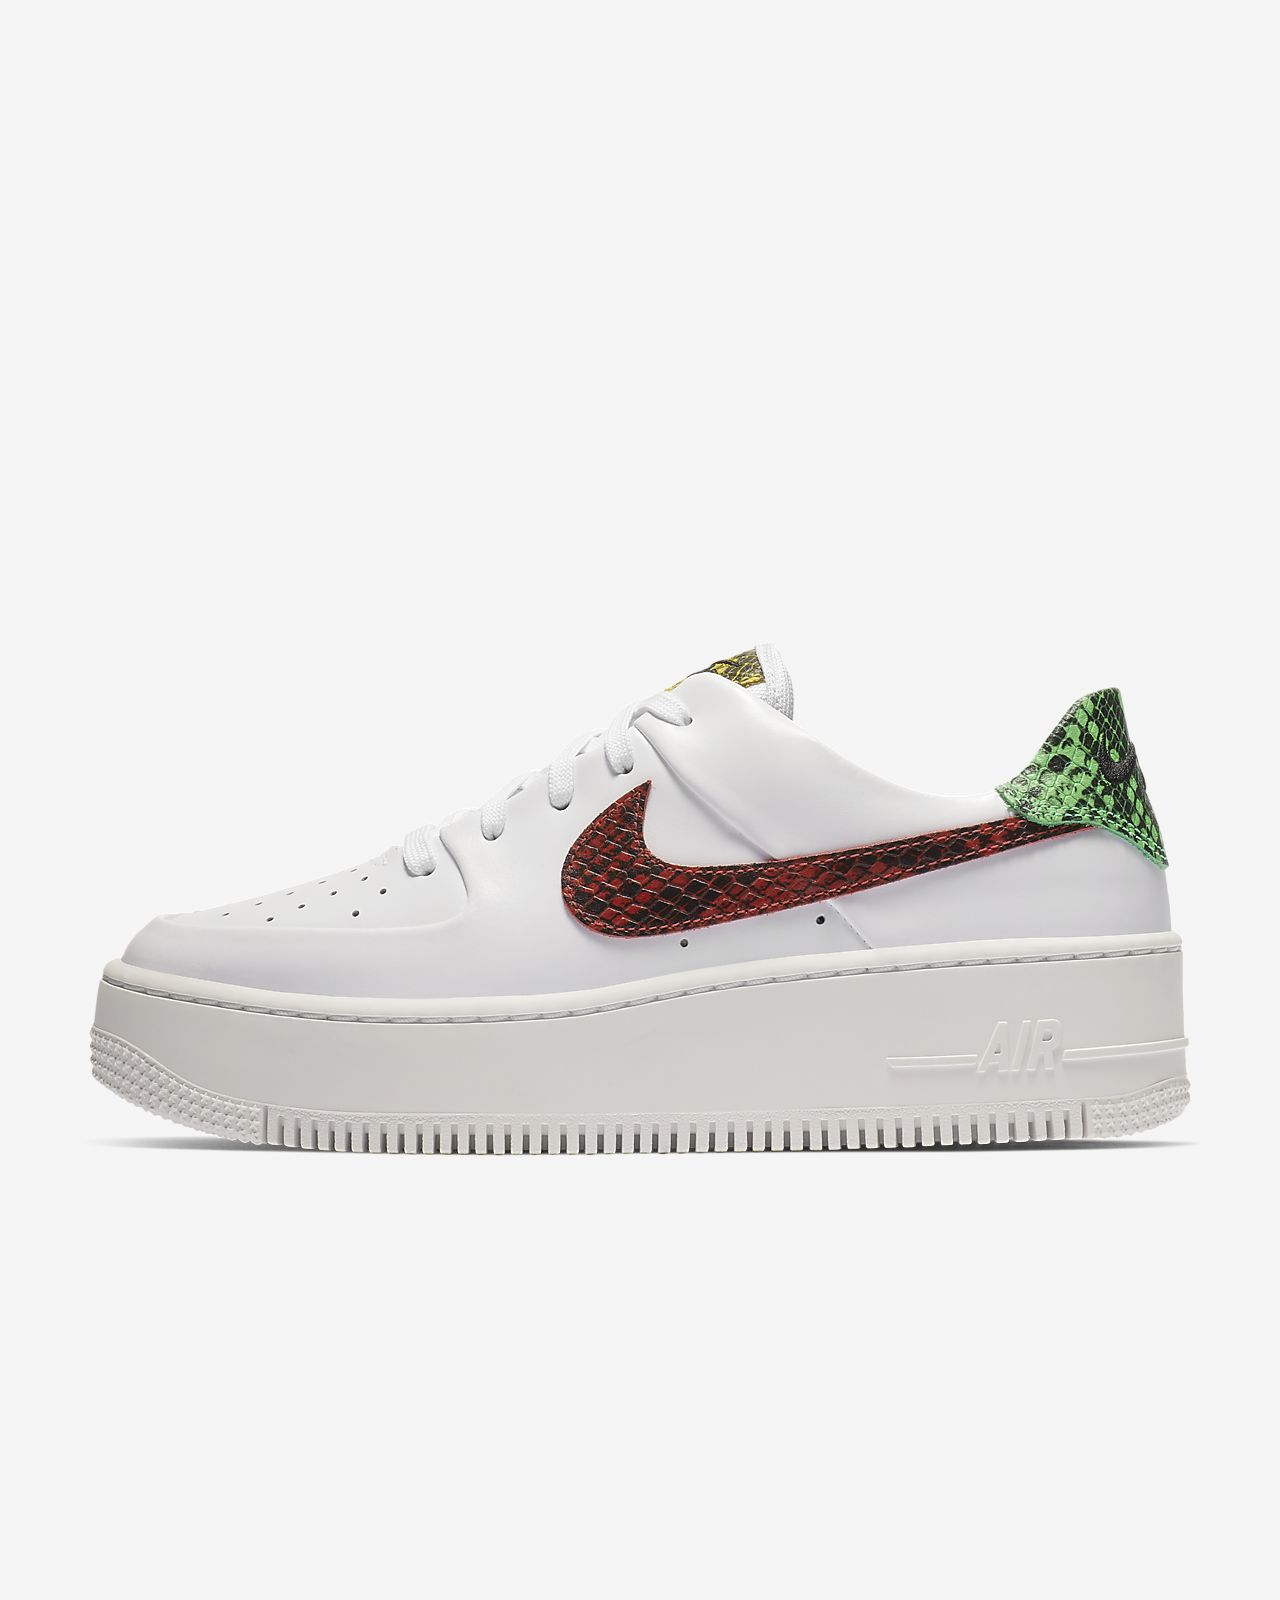 4d4ccd2a15e Nike Air Force 1 Sage Low Premium Animal Women s Shoe. Nike.com GB